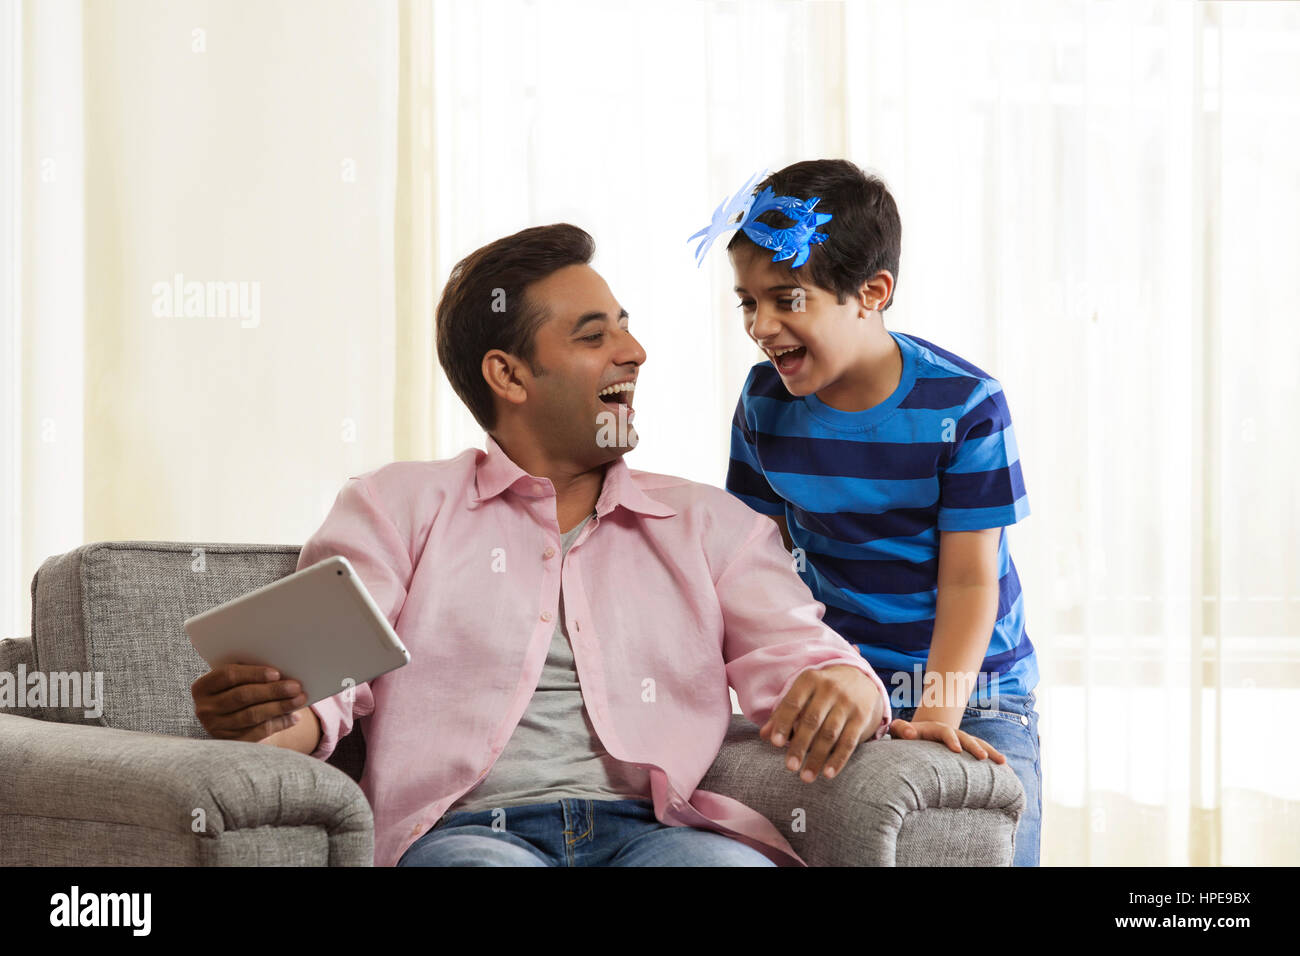 Boy with mask laughing with his father looking at each other - Stock Image